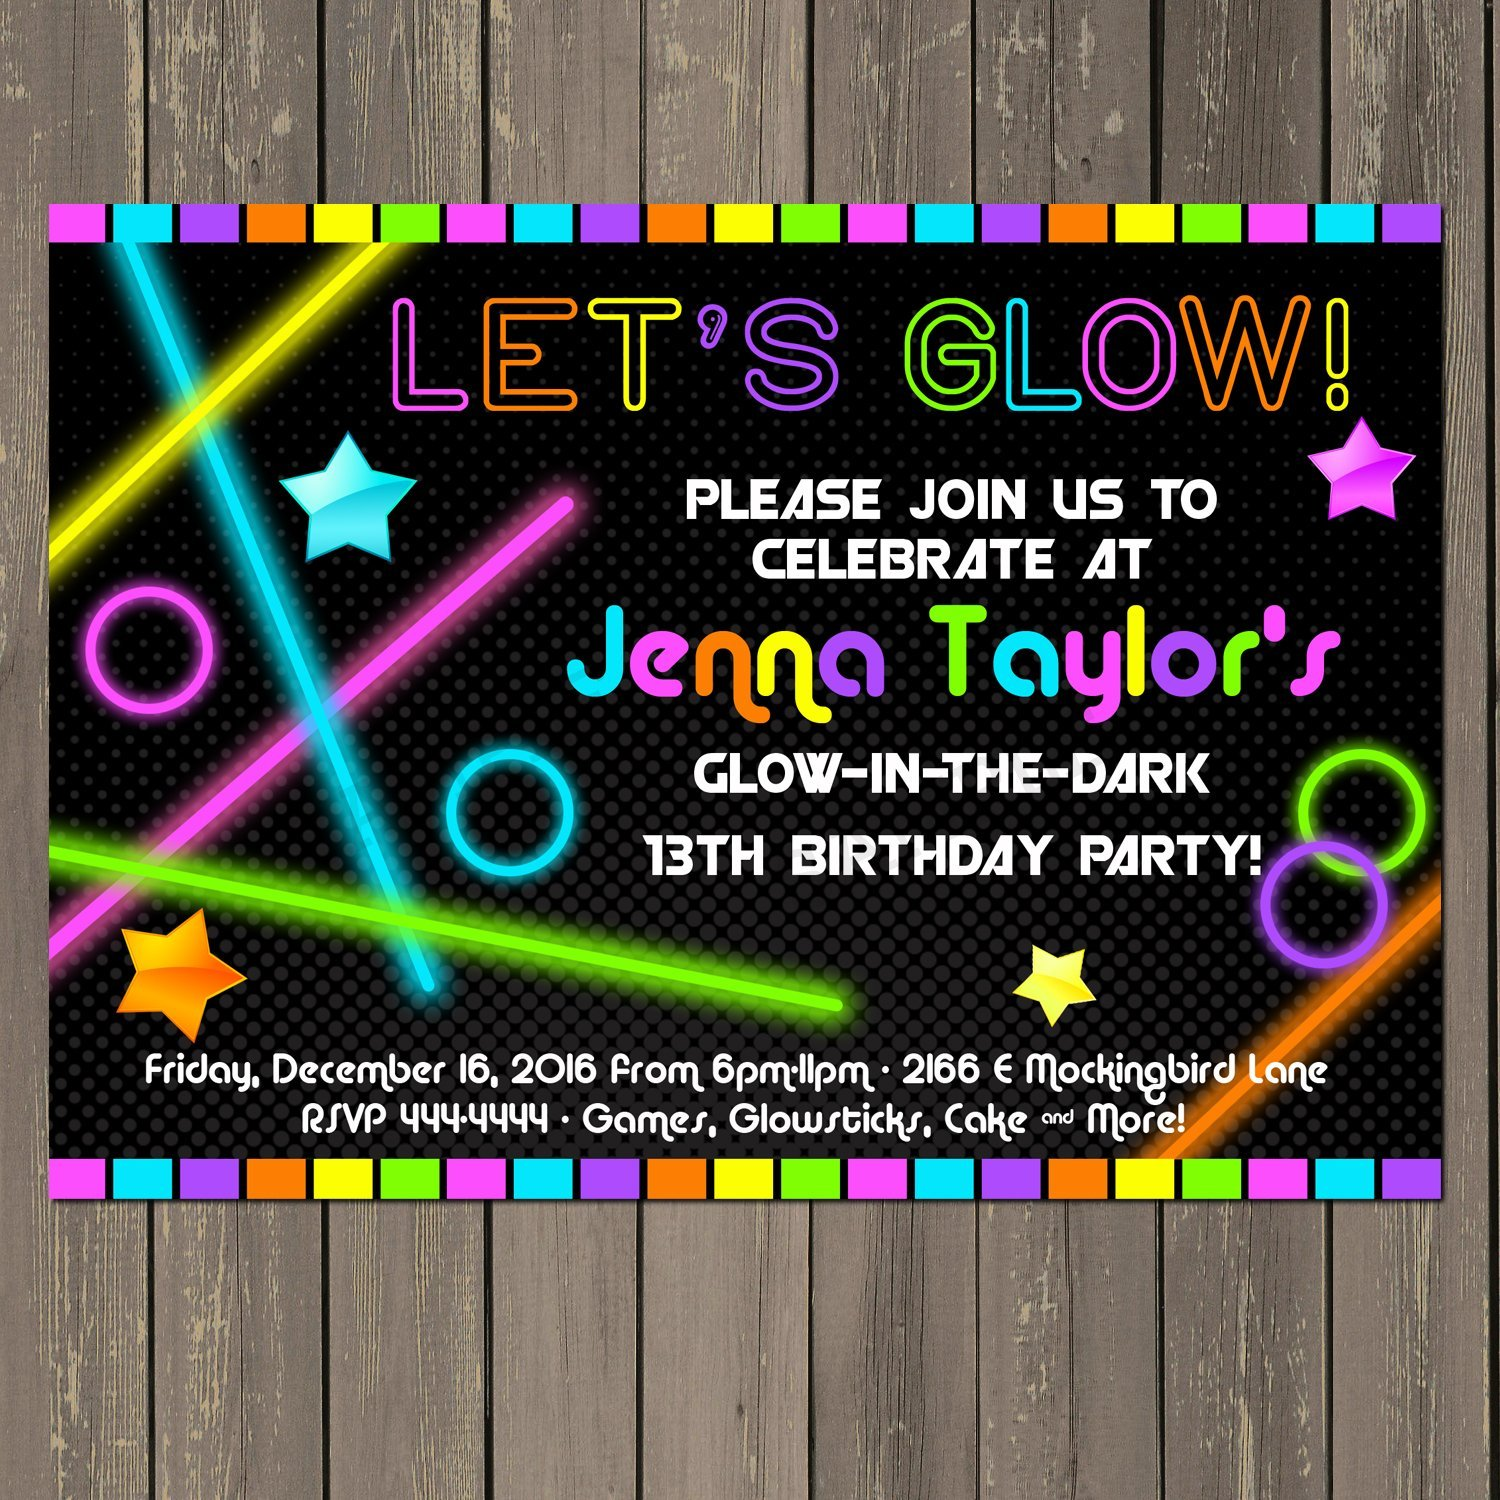 Glow In The Dark Themed Birthday Party Invitation Neon Set Of 10 5x7 Inch Invitations With White Envelopes